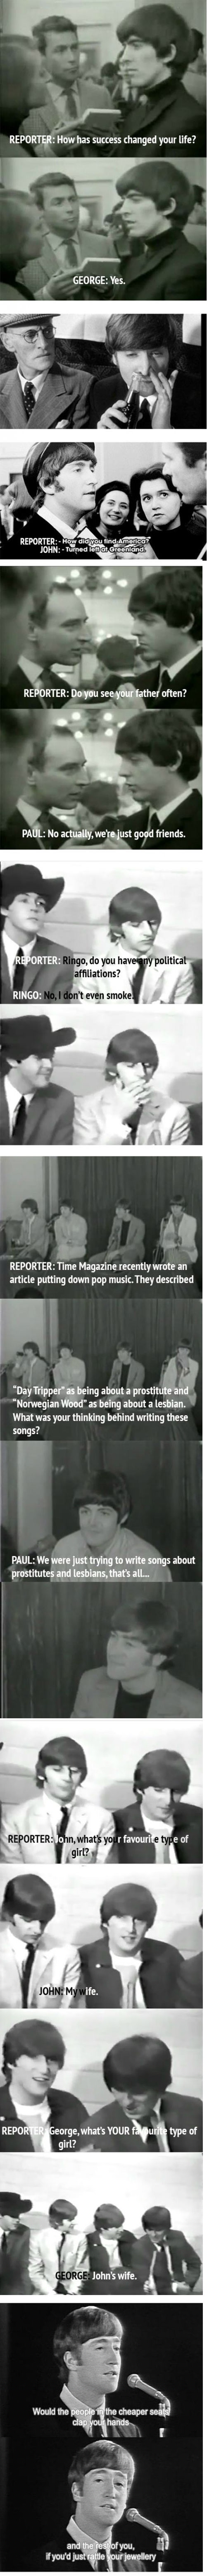 funny-picture-beatles-questions-answers